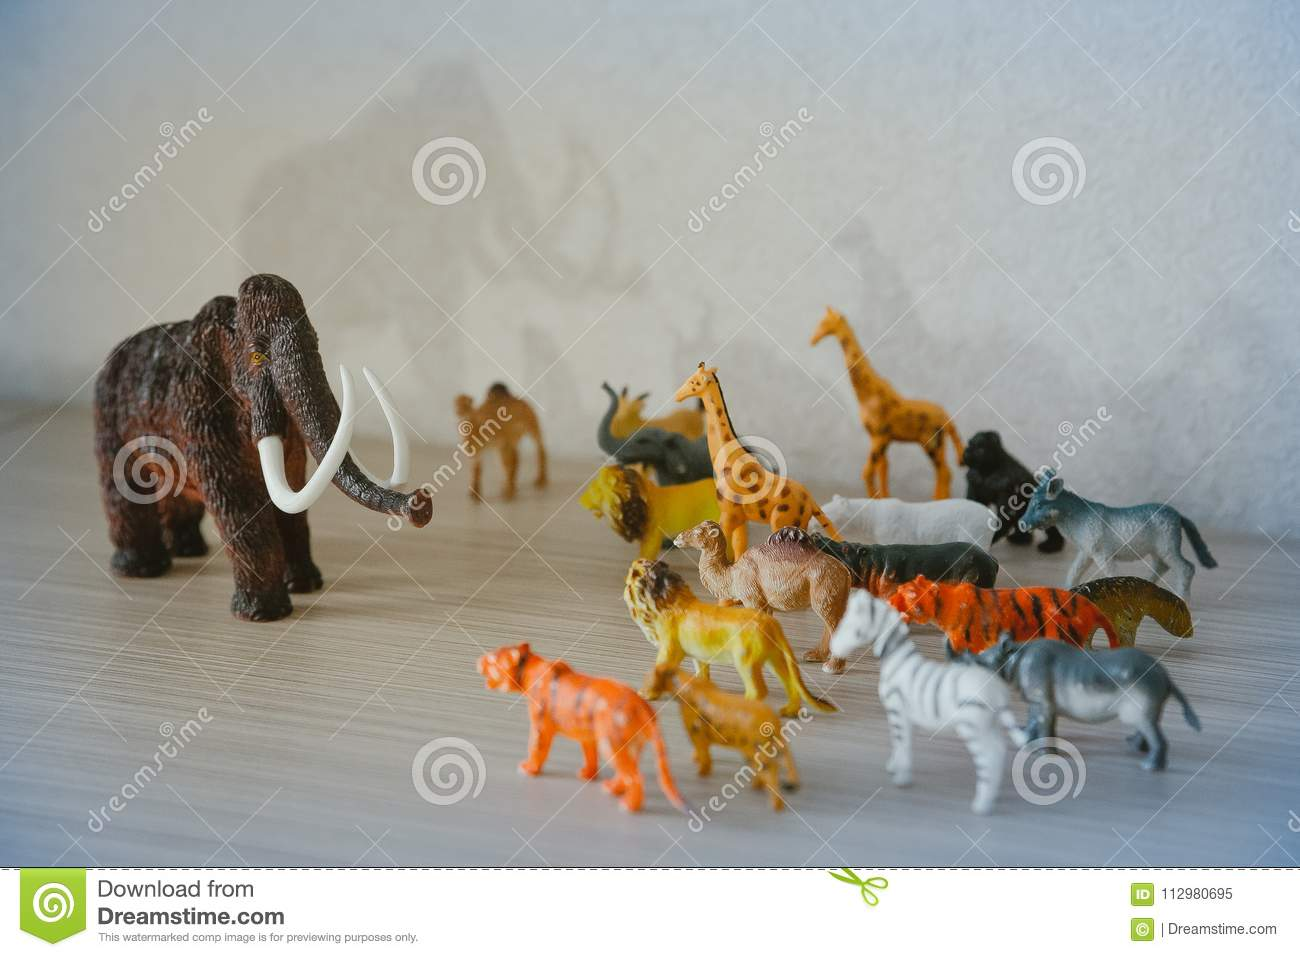 Mammoth ice age fighting with wild animals